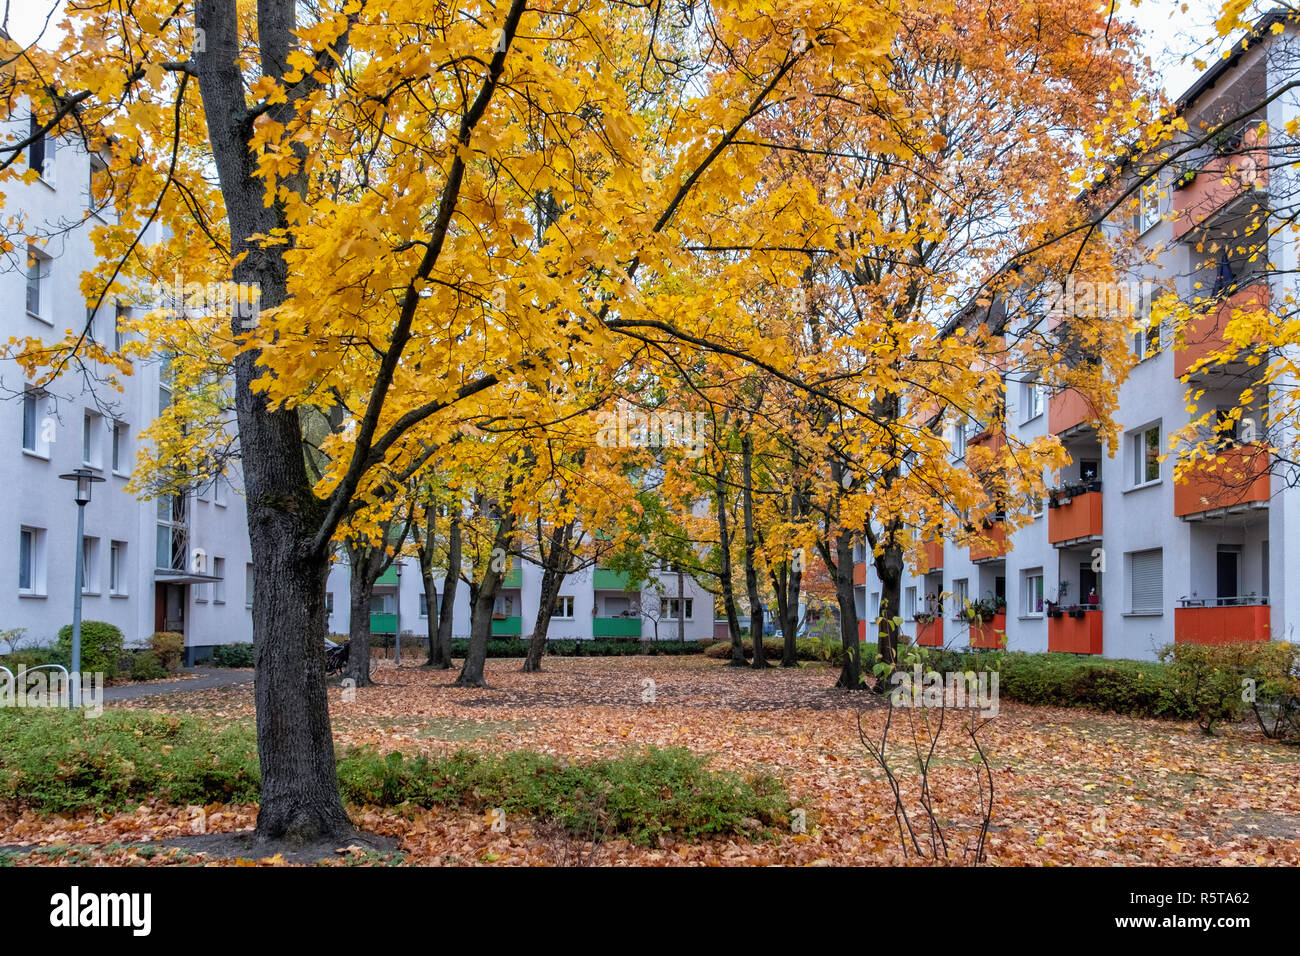 Berlin,Reinickendorf, Apartment buildings and colurful Autumn Foliage in Bernauer Strasse. - Stock Image